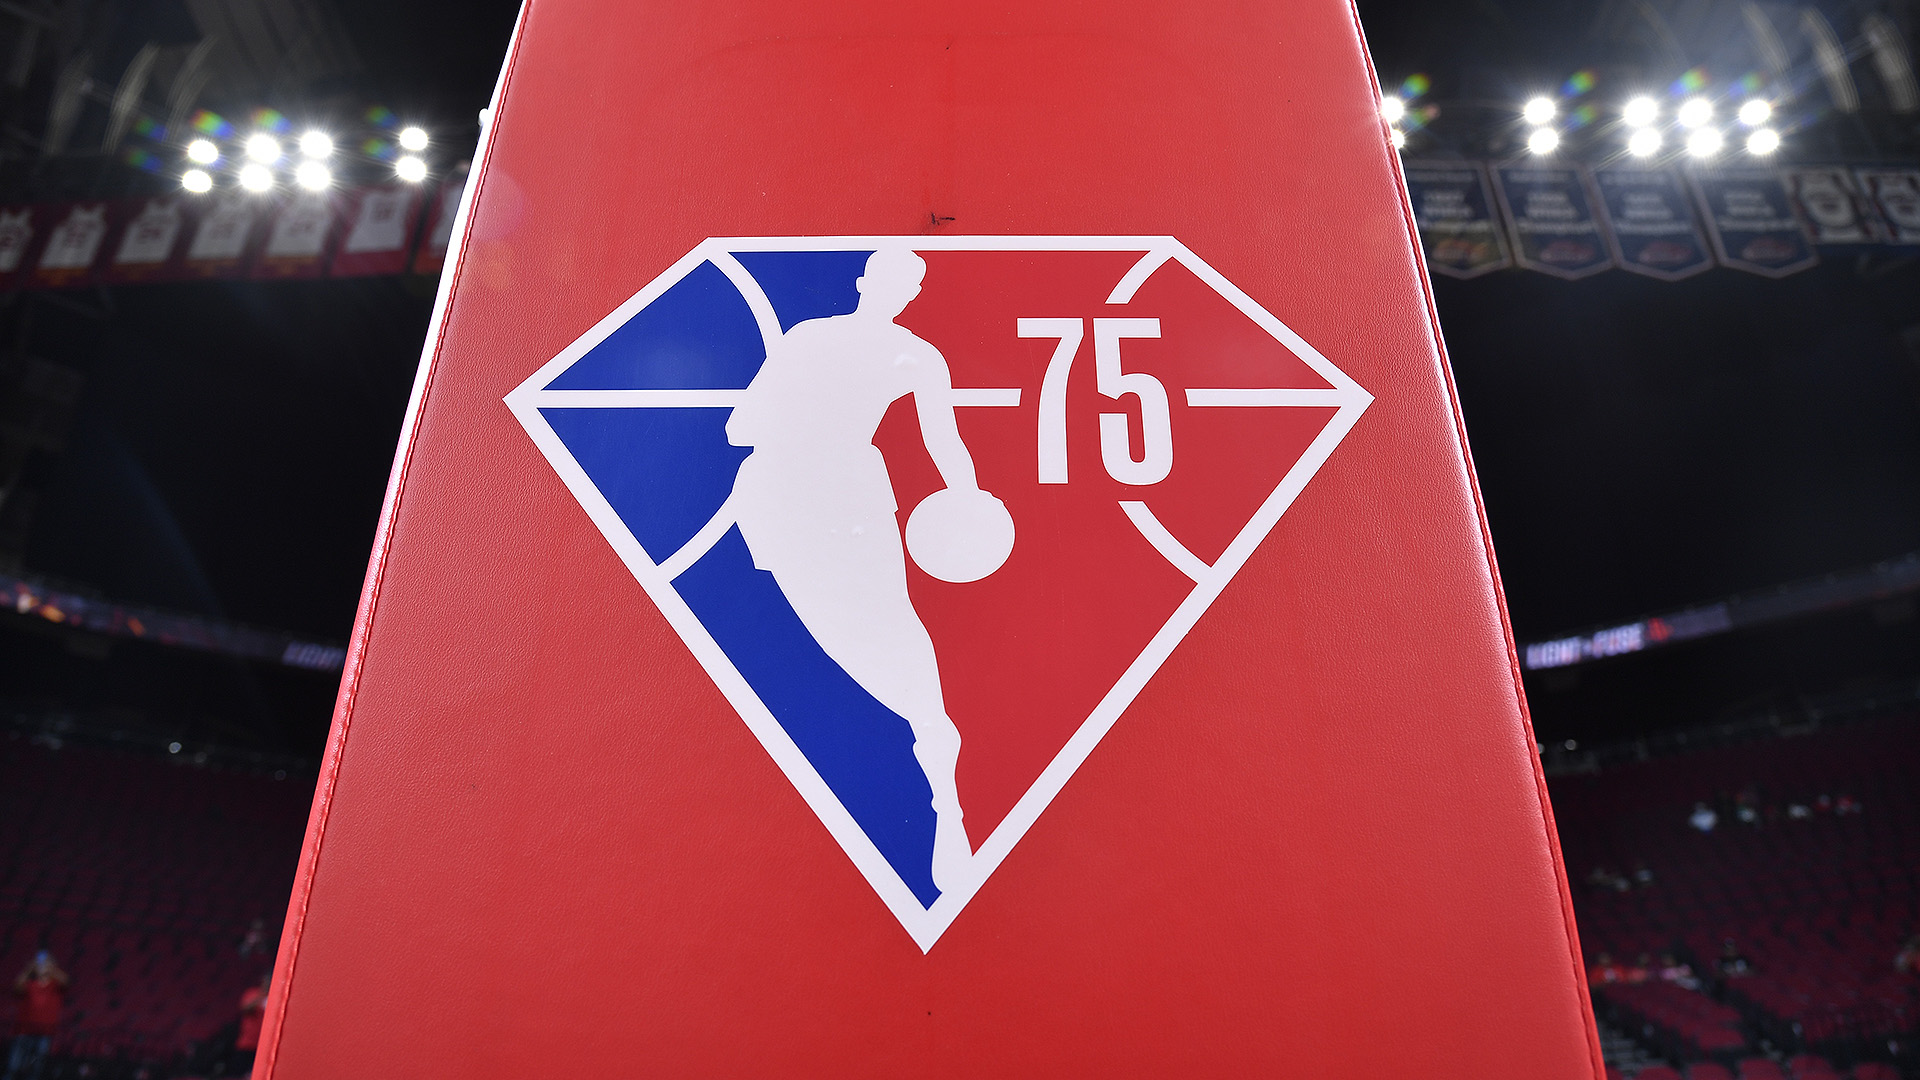 By The Numbers: NBA celebrates 75th anniversary season